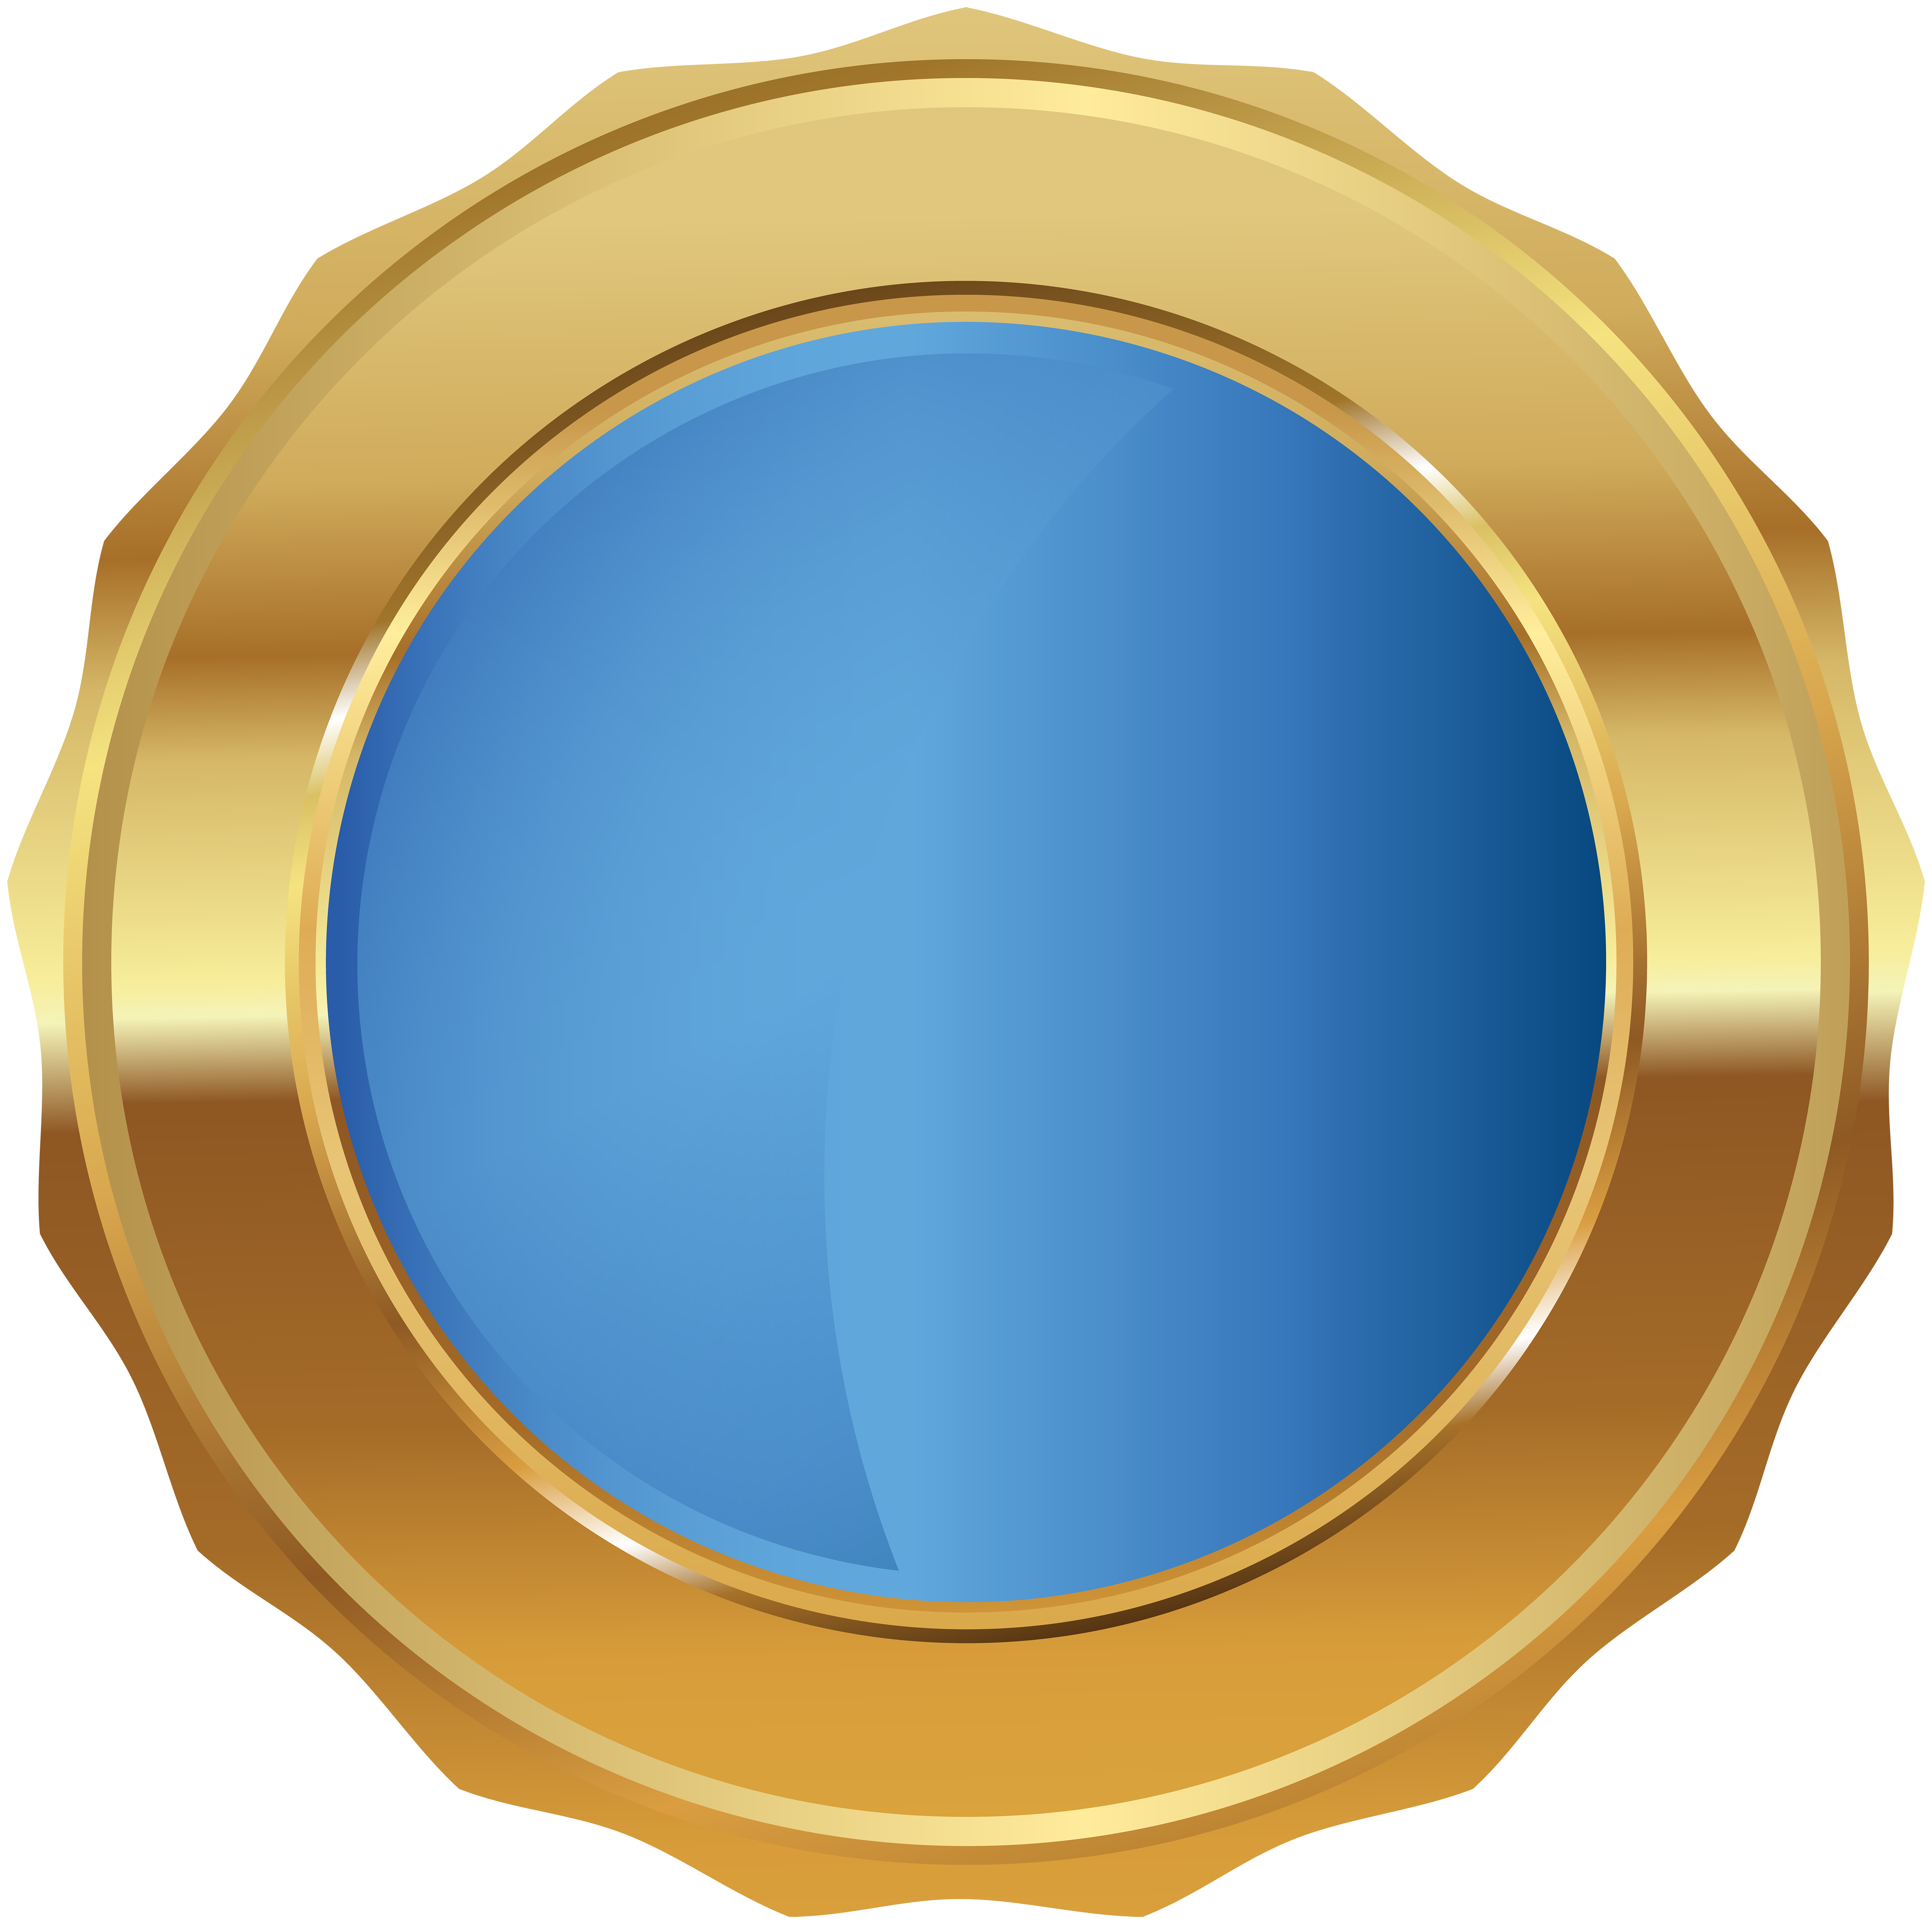 Seal clipart happy. Gold blue badge png